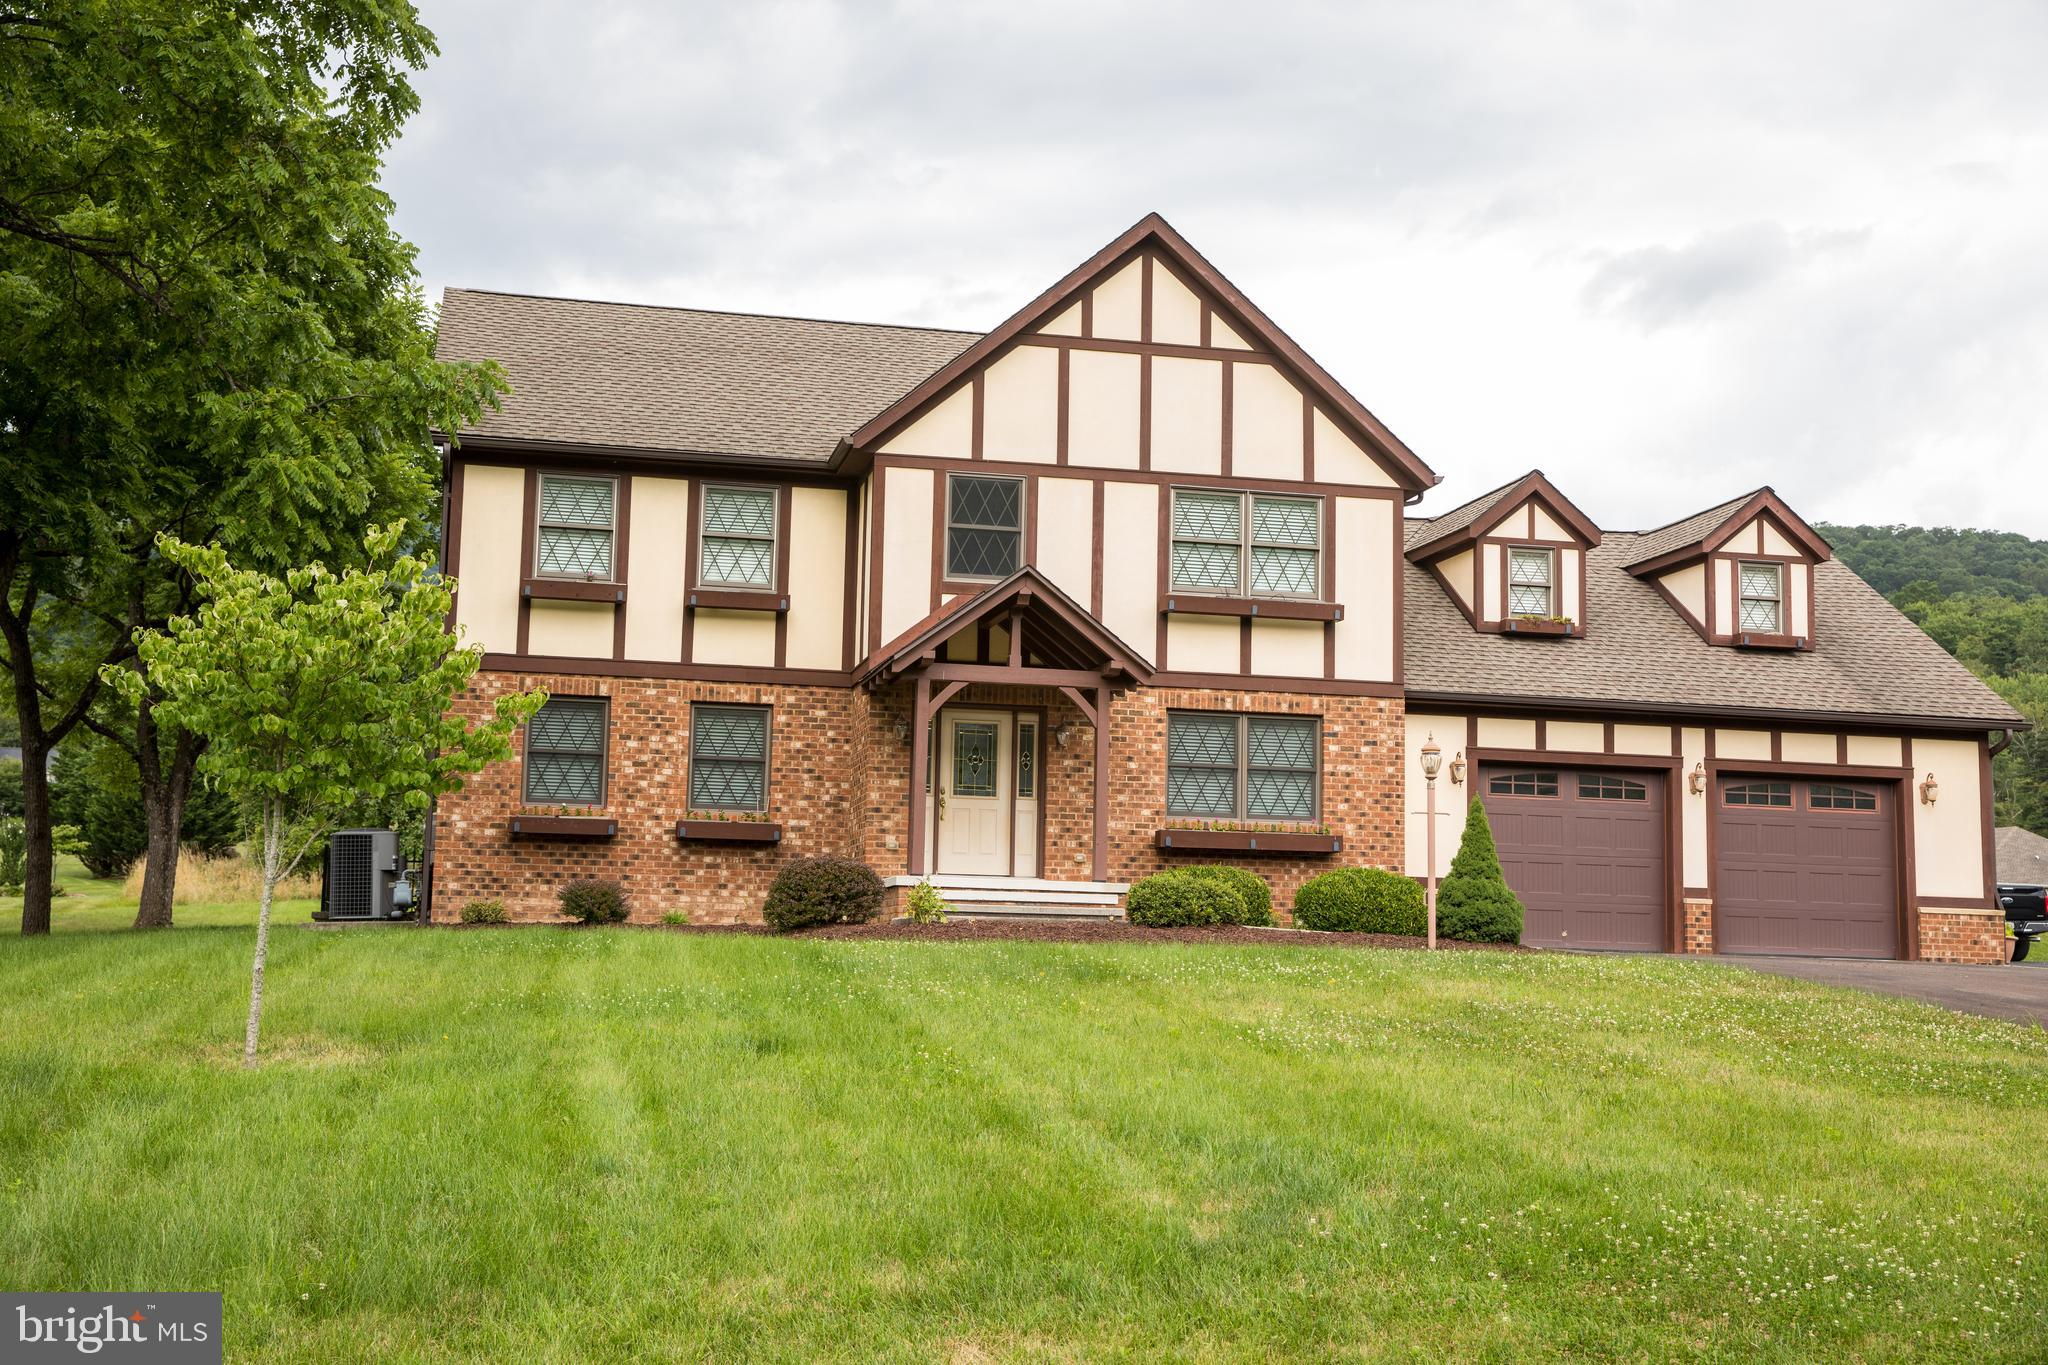 10503 PEARL VIEW PLACE, LAVALE, MD 21502